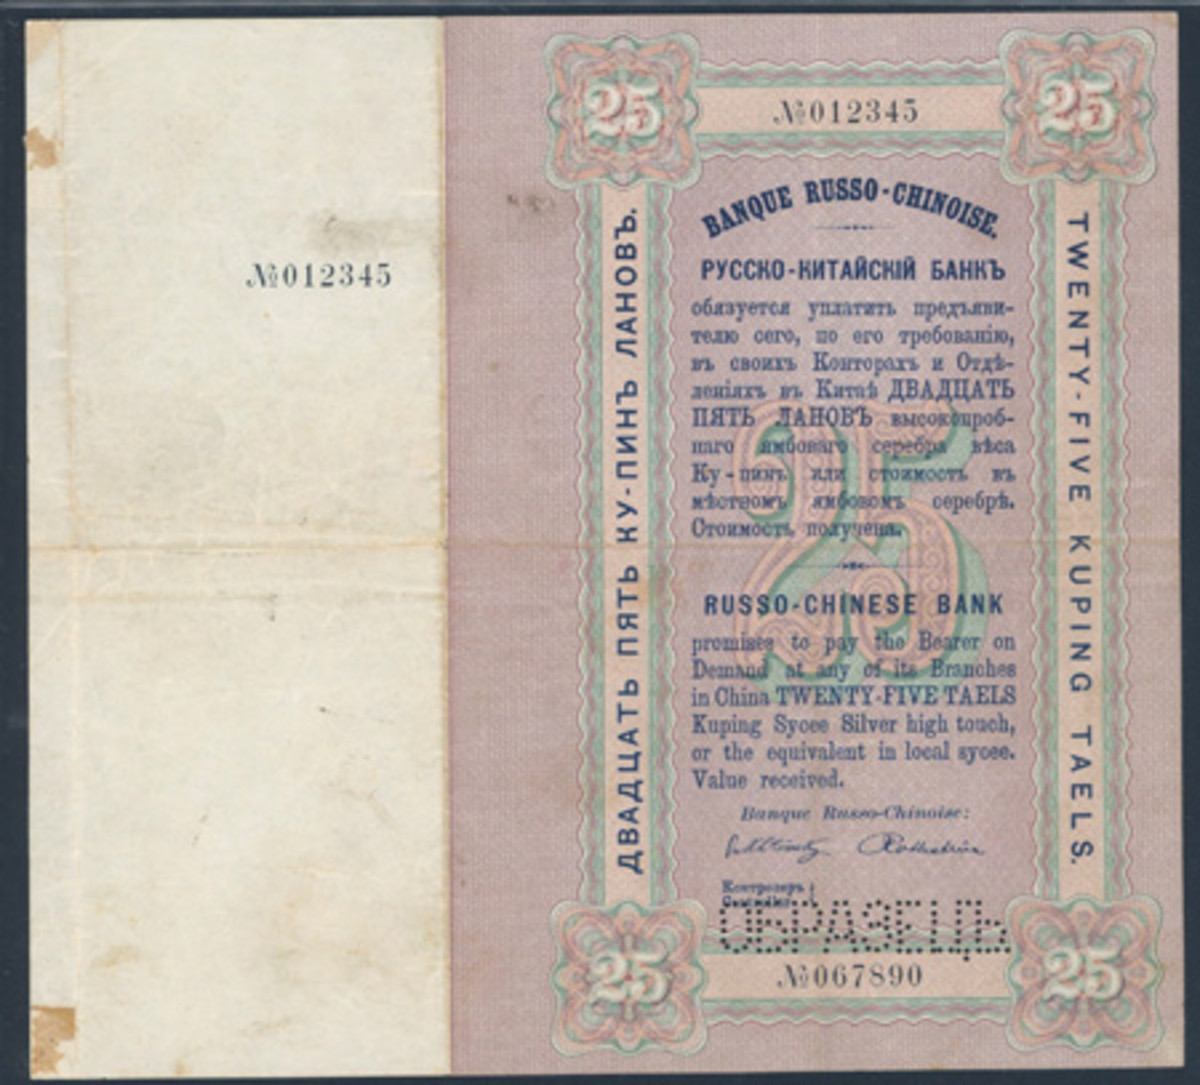 NIP and possibly unique, a Russo-Chinese Bank specimen 25 kuping taels c. 1909. It carries a grade of PMG 35NET Choice Very Fine and an appropriate estimate of $20,000-25,000. (Image courtesy and © Spink, China)